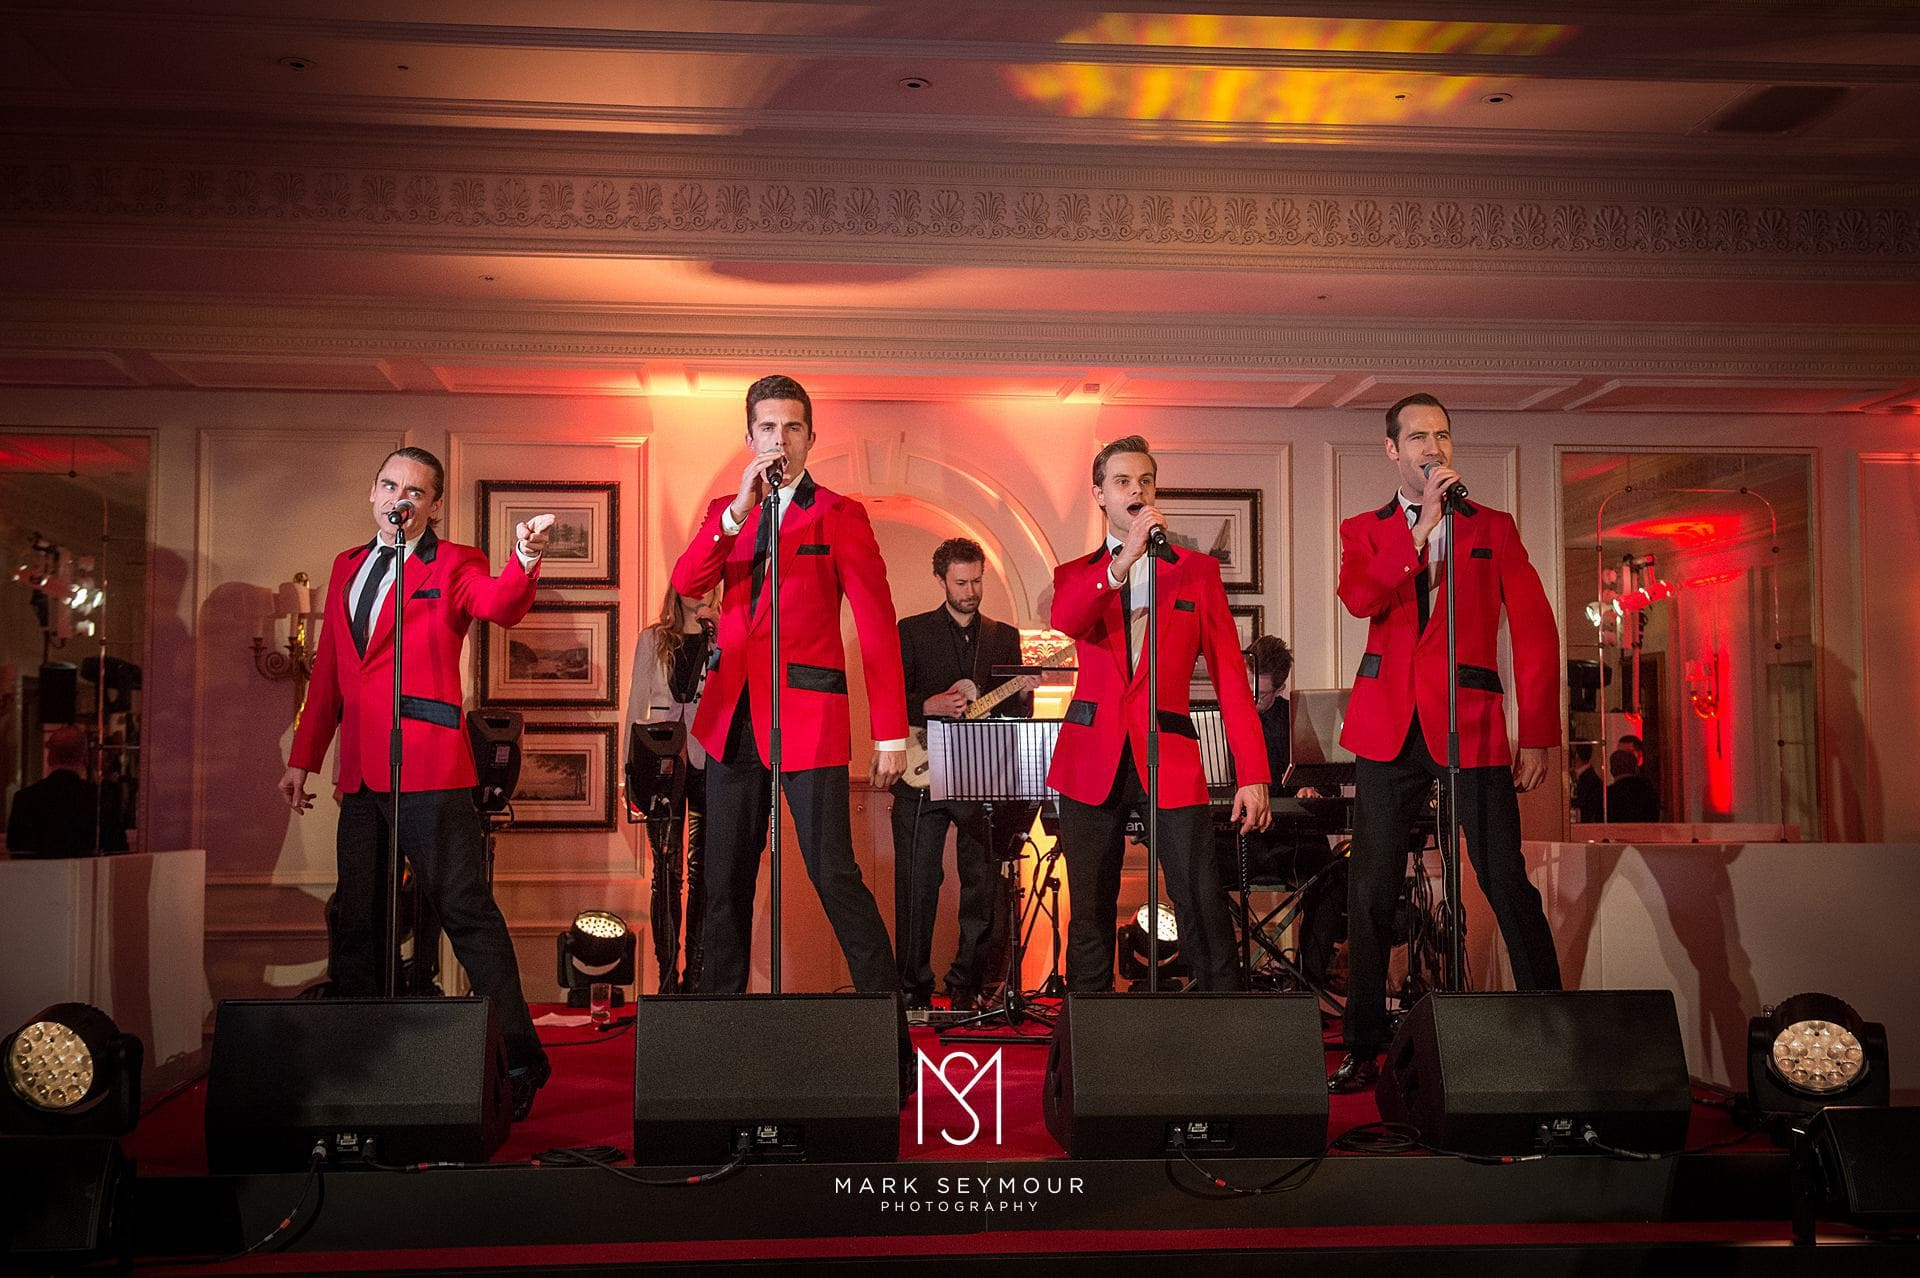 The Jersey Boys at The Savoy